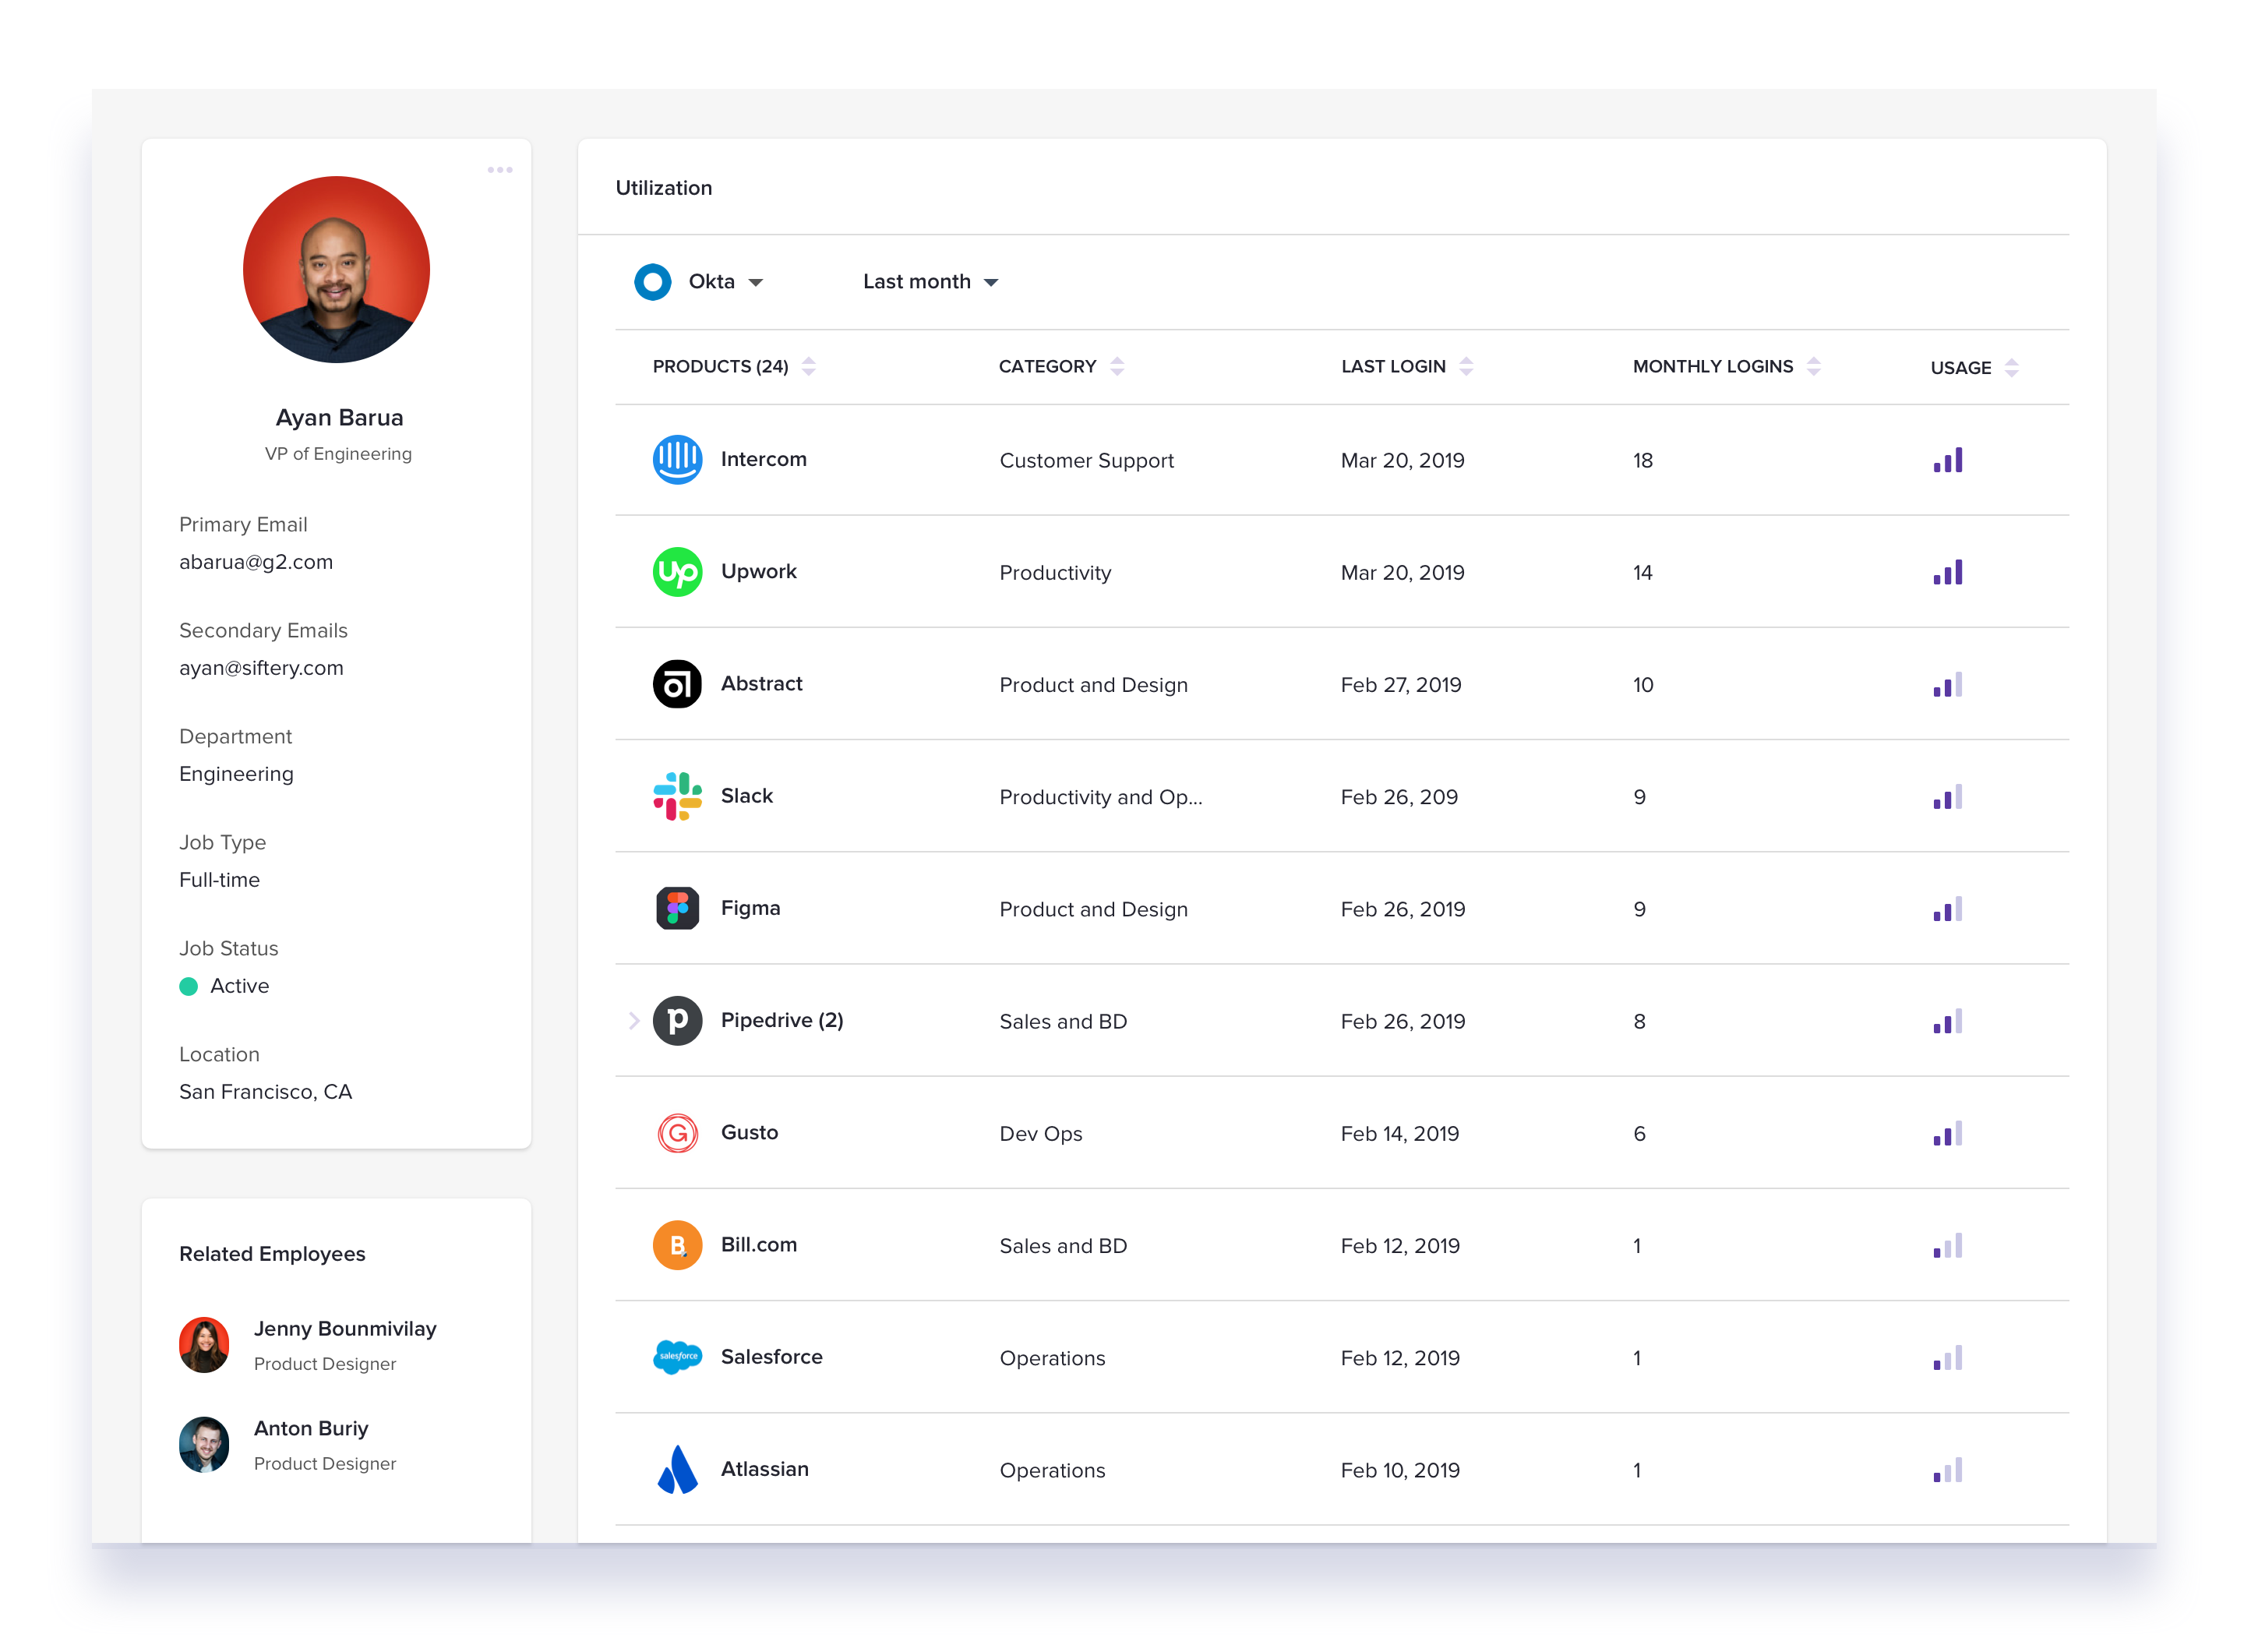 Collaborate on IT - Track usage, by employee